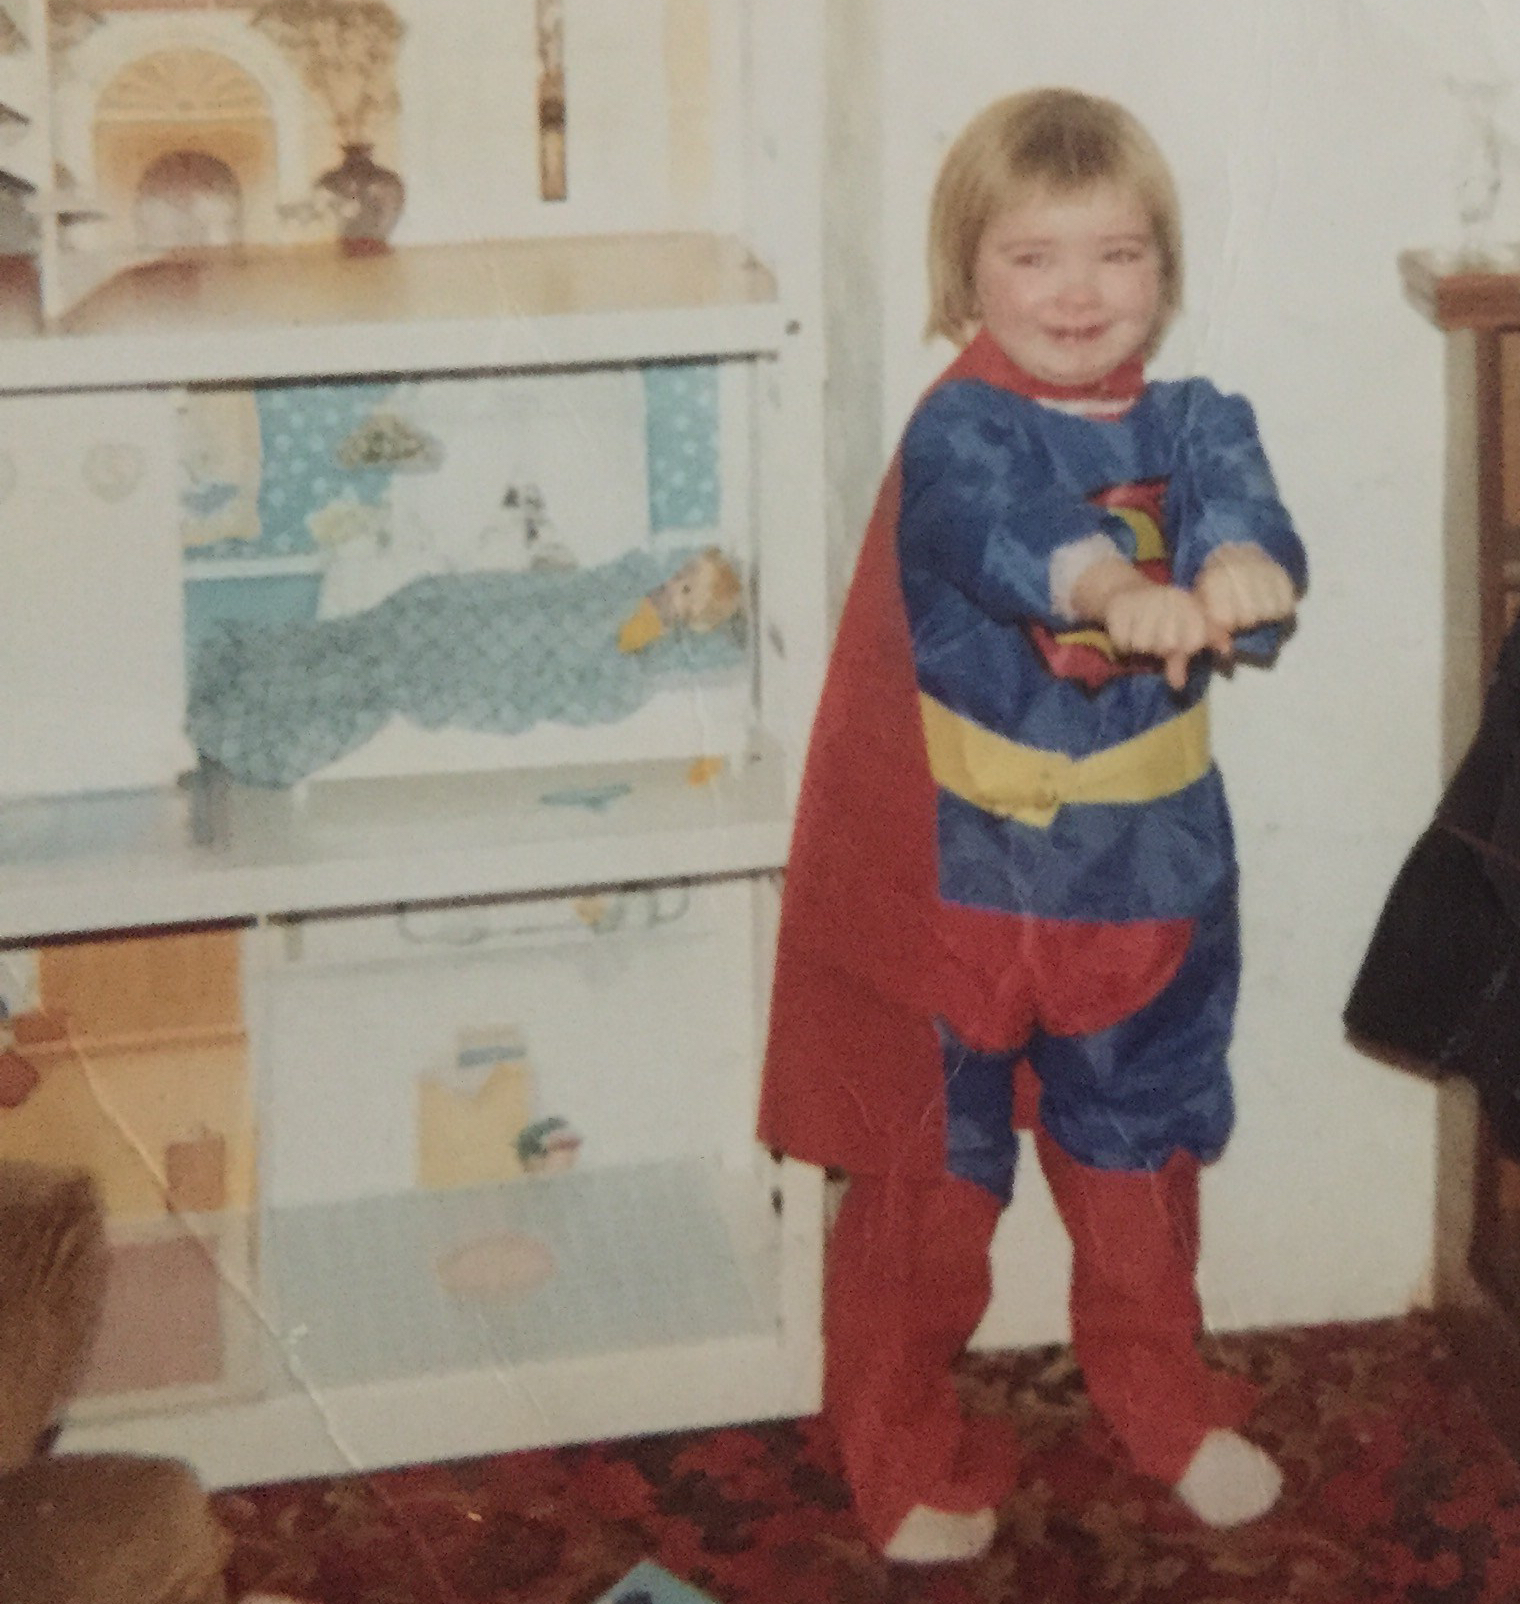 Super Powers from a young age!